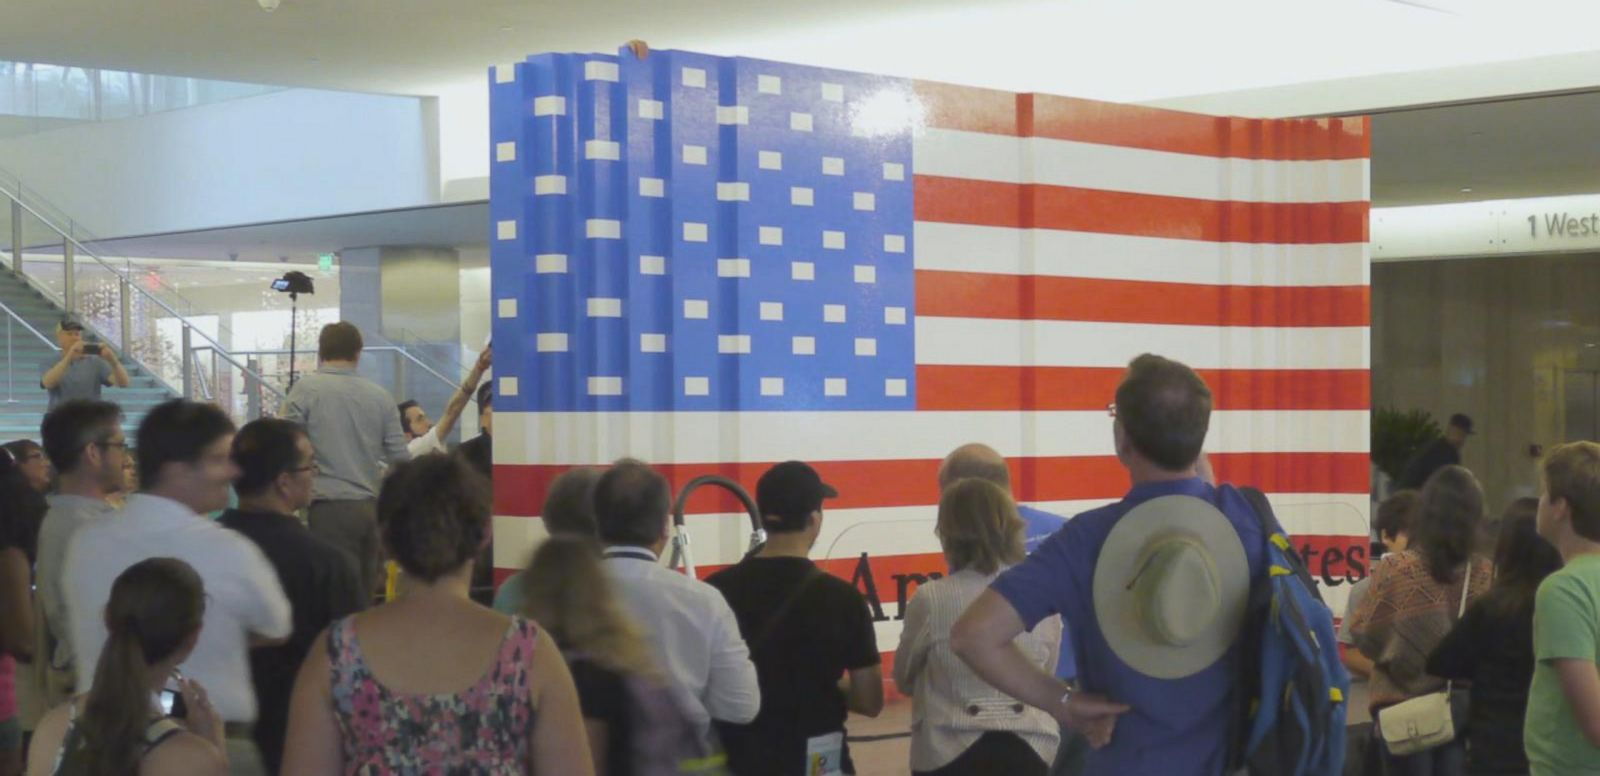 VIDEO: See the Largest American Flag Made Out of Legos